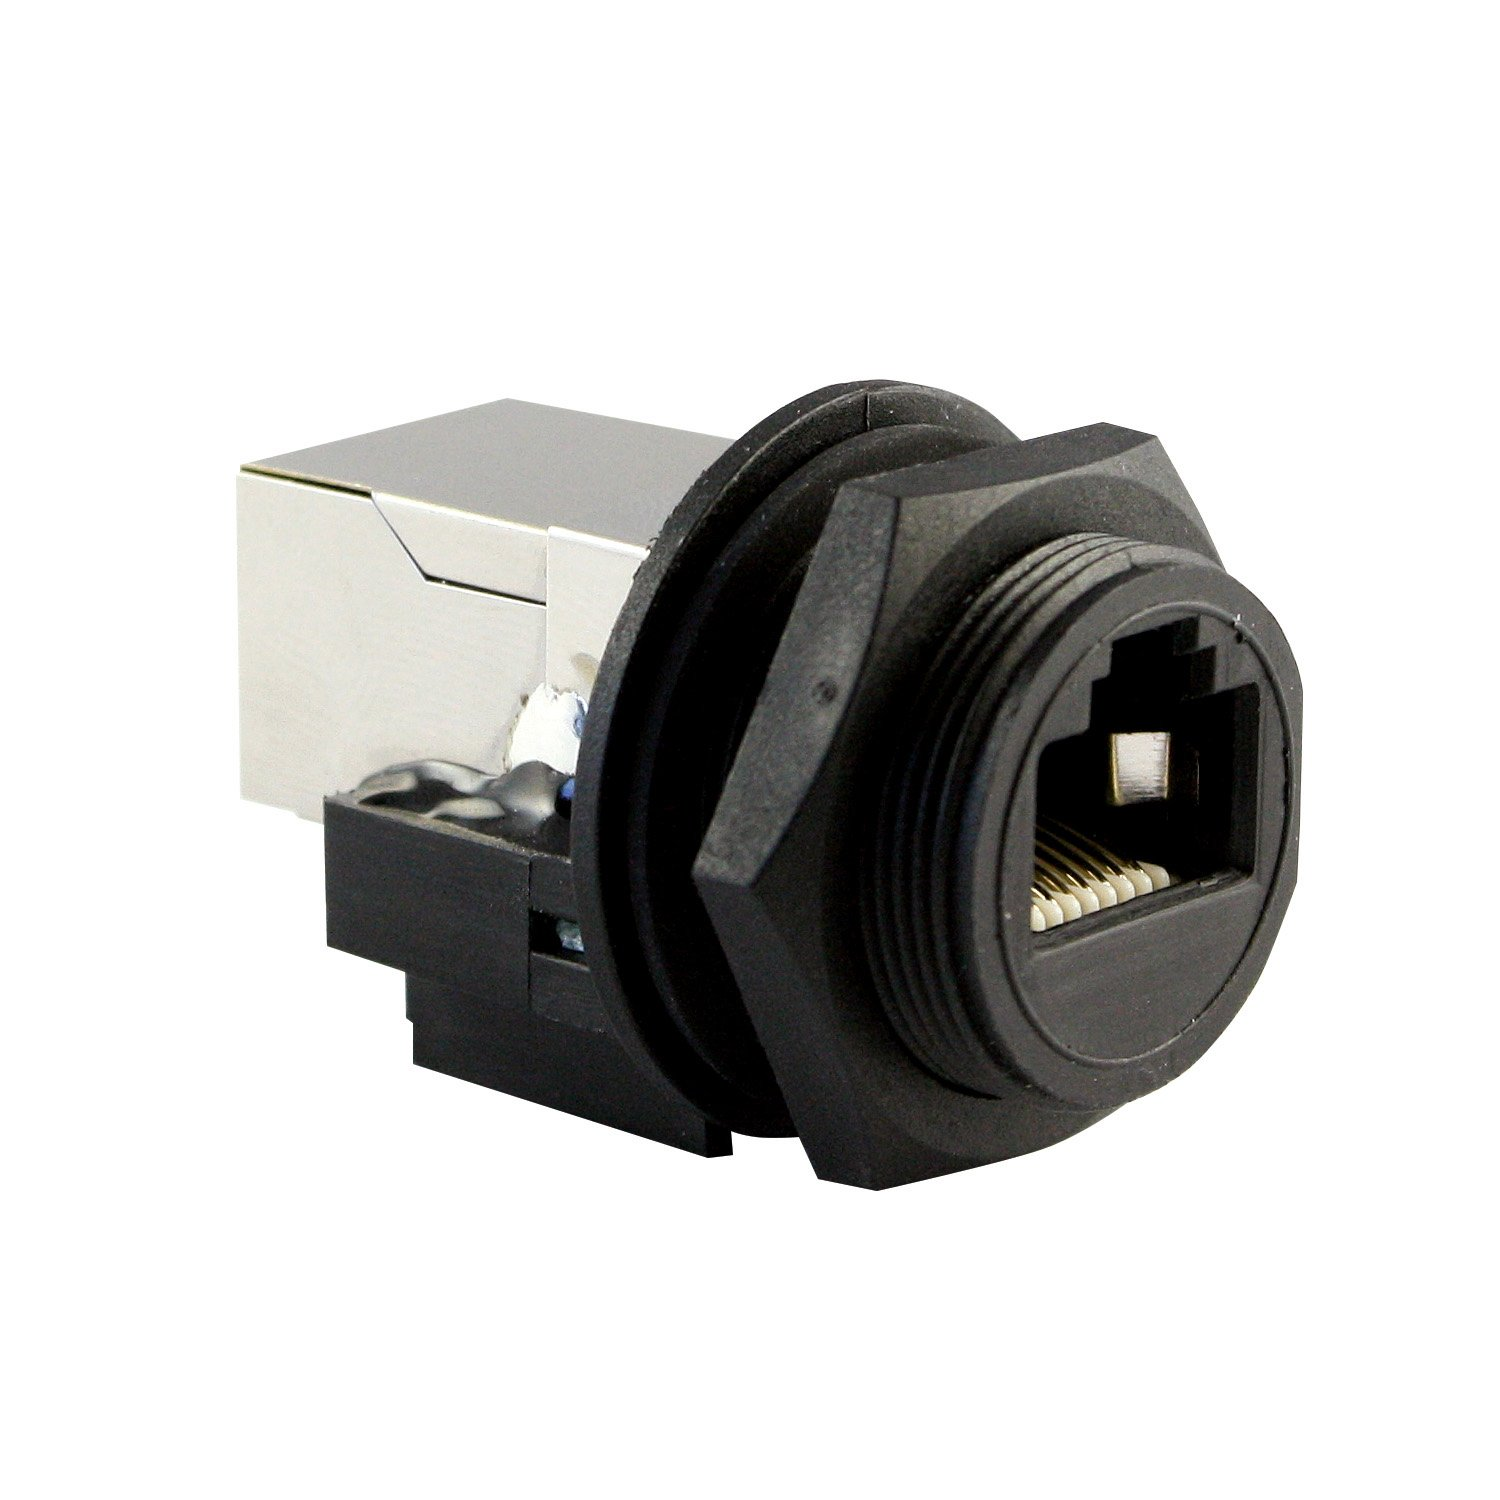 ASI ASICPICRJ45S RJ45 Panel Mount, Waterproof Connector (When Used with Cap), Shielded, Front Mount, Female, IP67, NEMA 6P, Cap Sold Separately